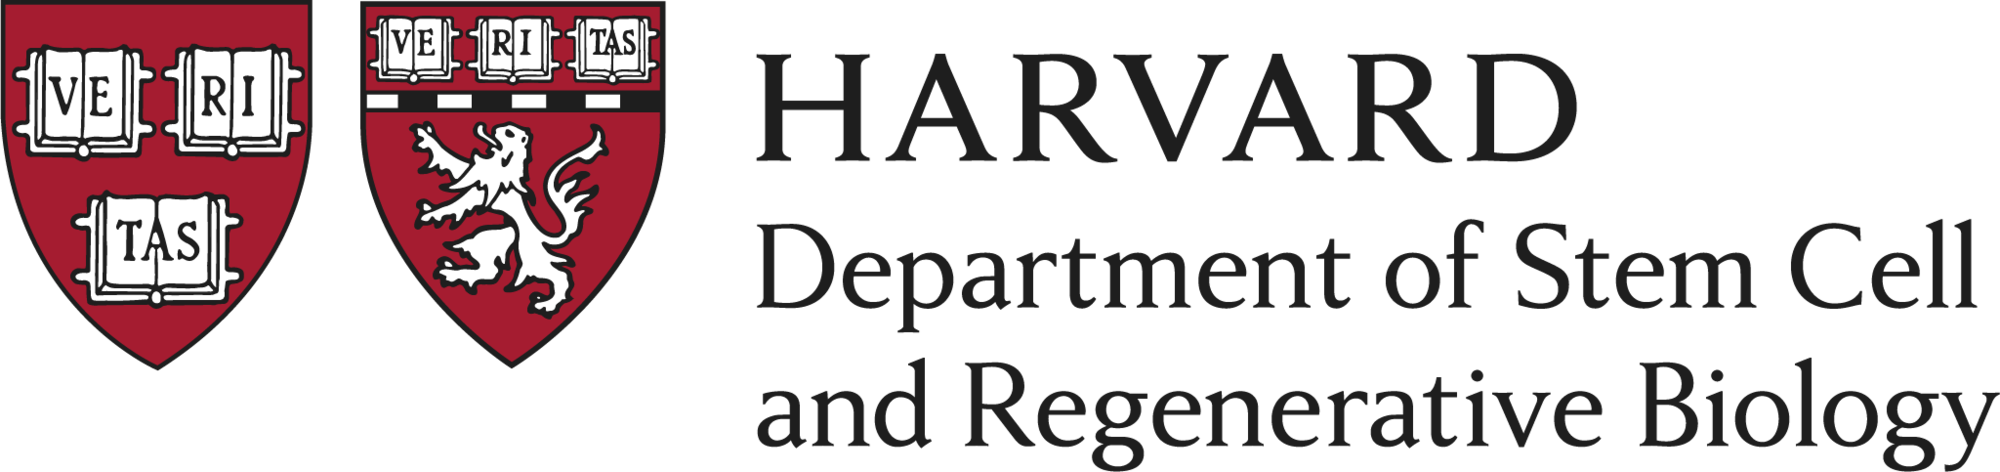 Harvard Department of Stem Cell and Regenerative Biology